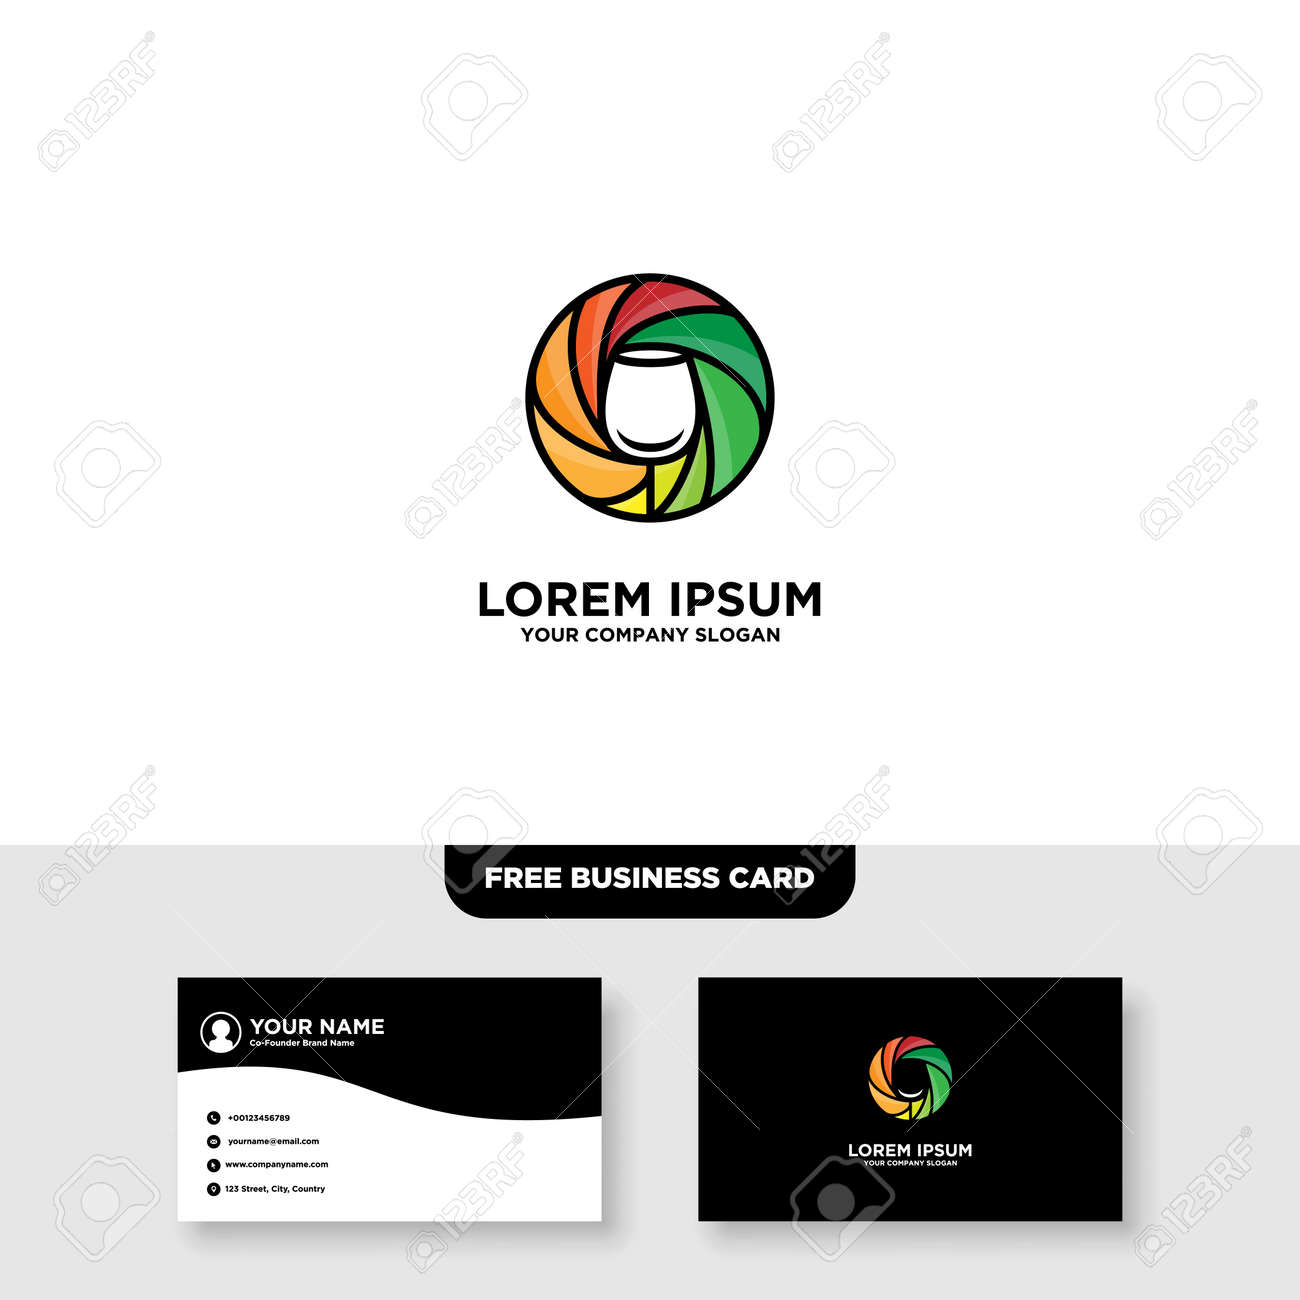 Camera Wine Logo and Business Card Template - 160497497